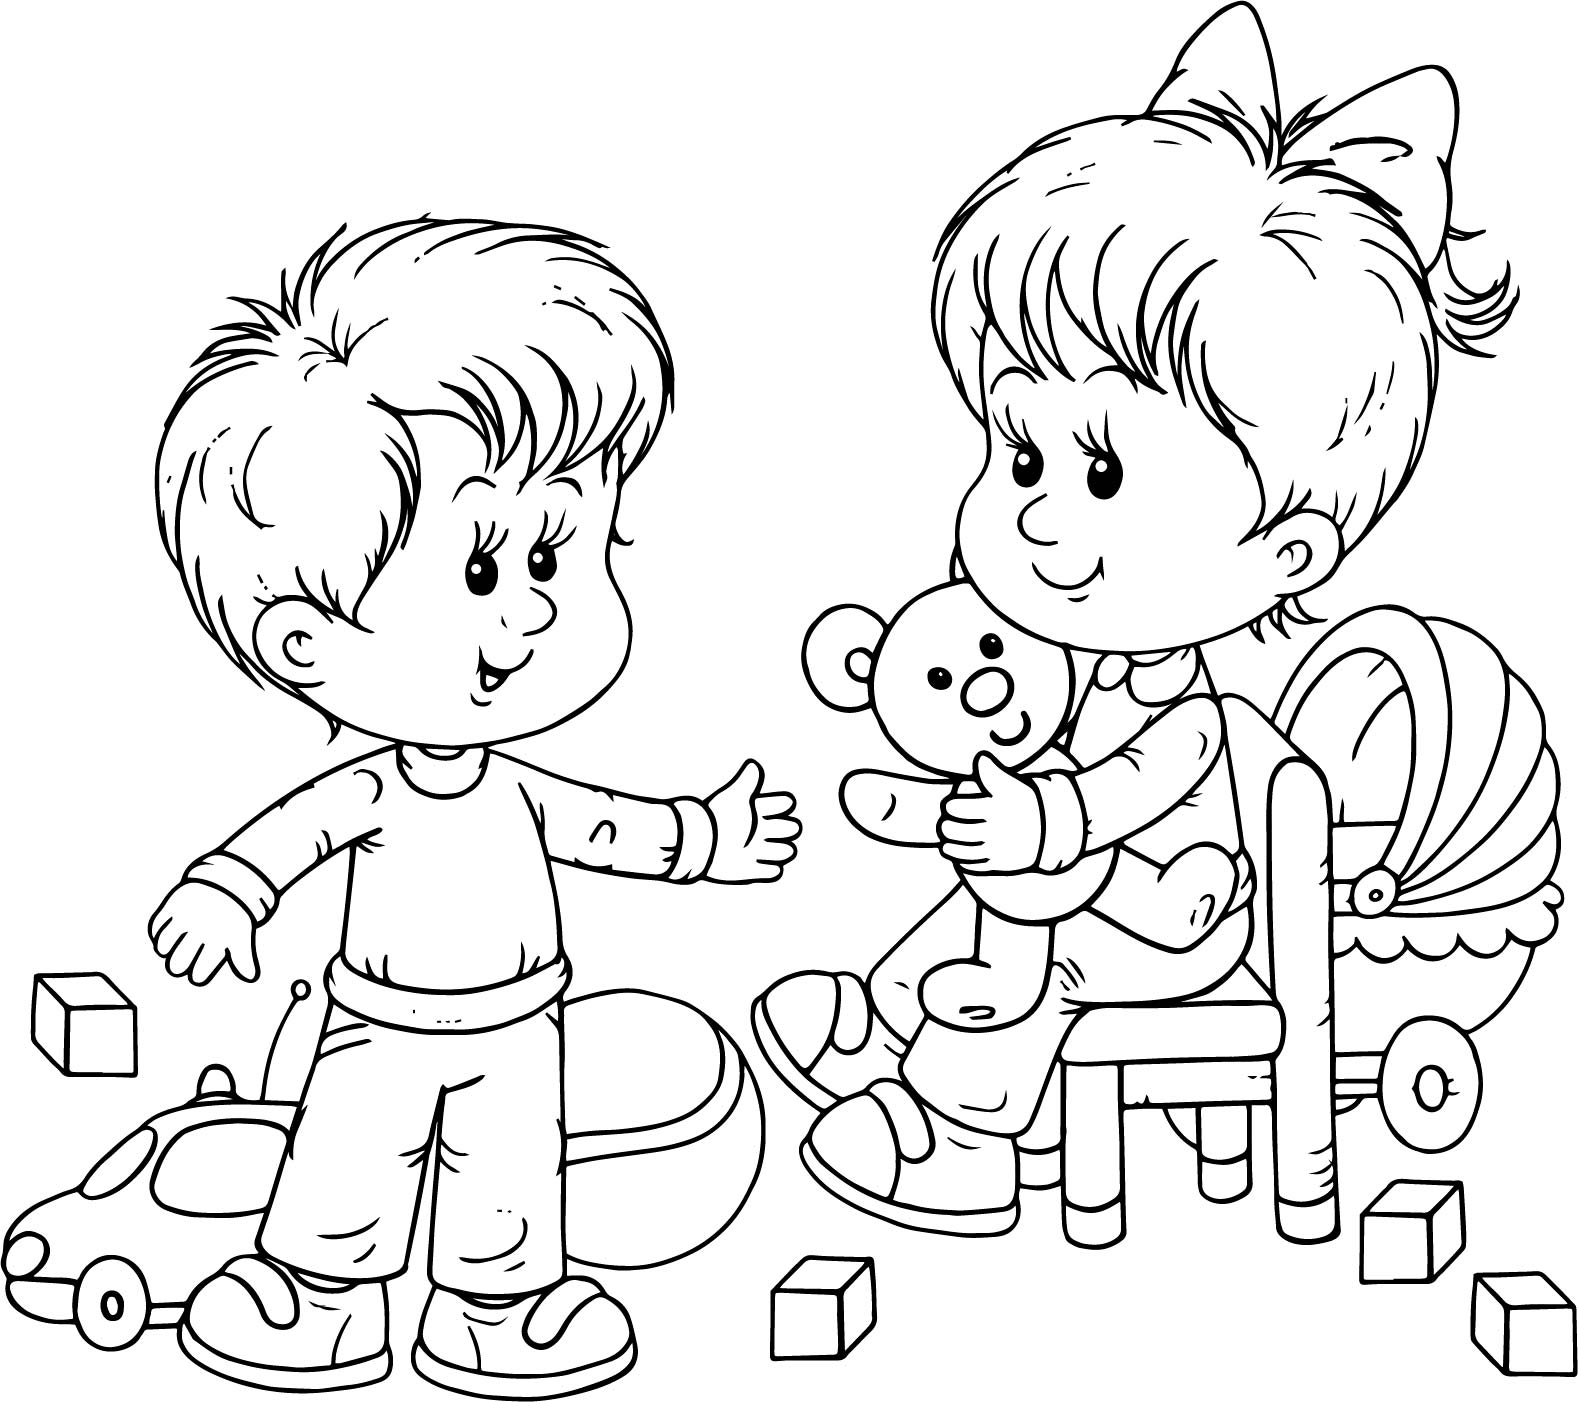 Preschool boy and girl playing toys coloring page for Coloring pages girl and boy